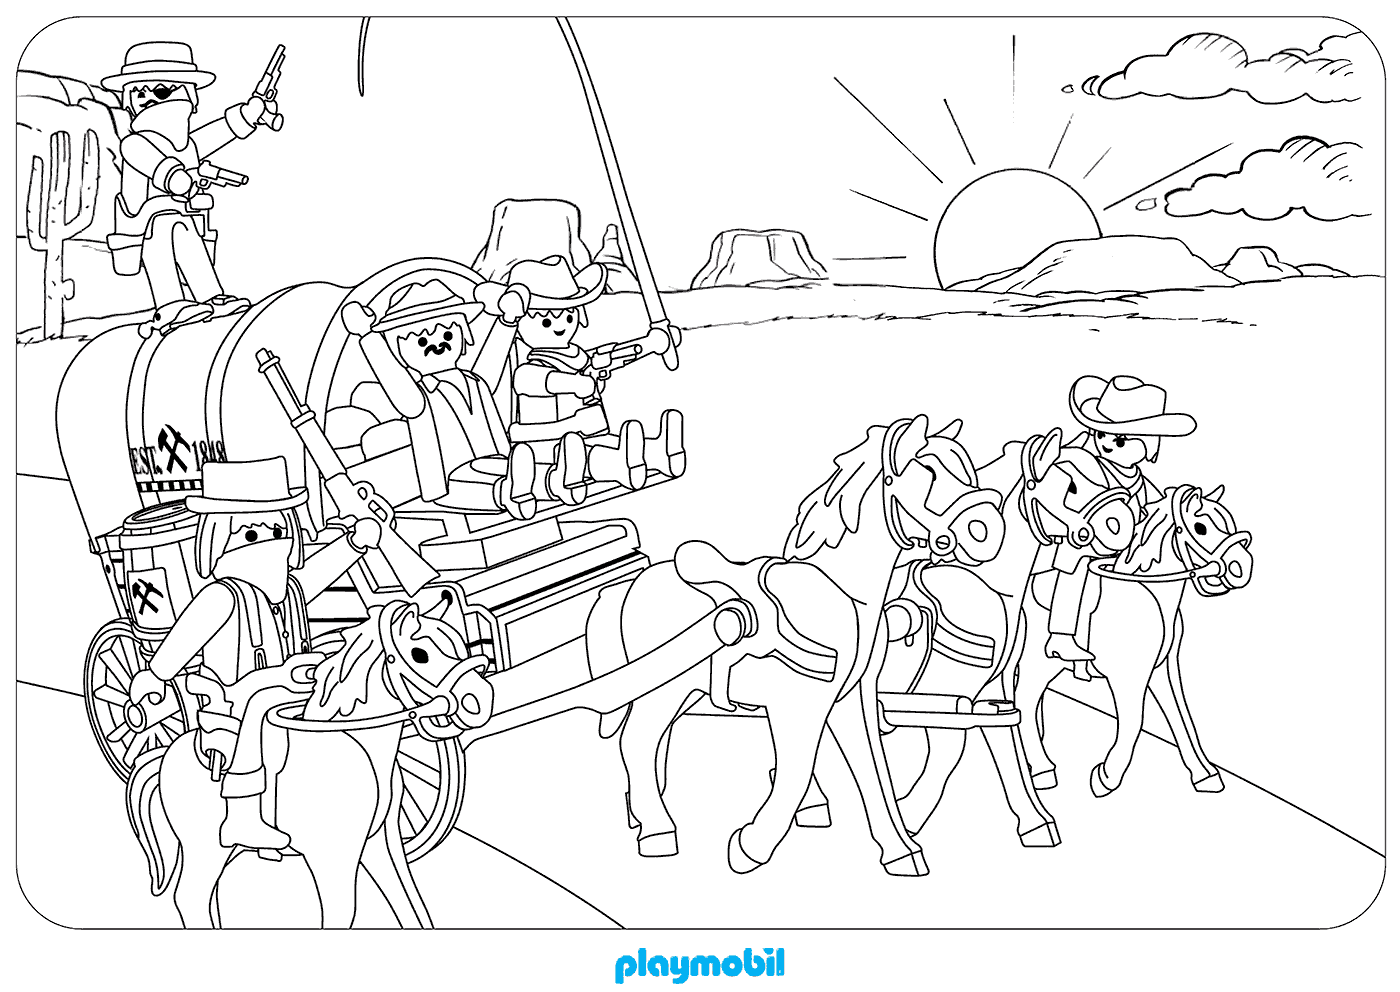 playmobil coloring pages at getdrawings  free download